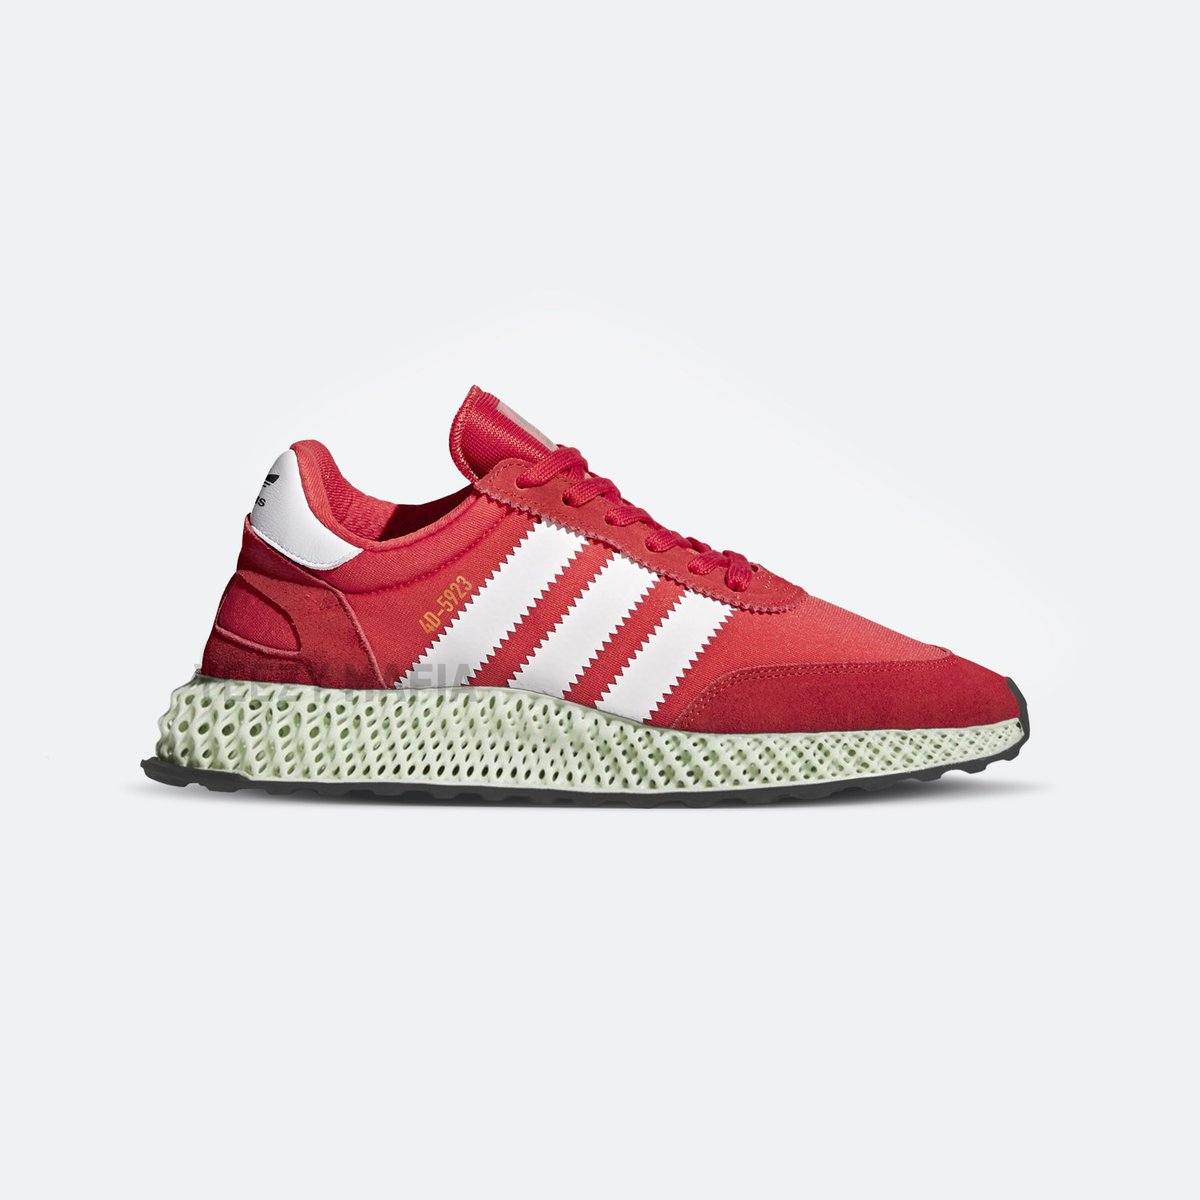 brand new 75a59 735ec Futurecraft 4d x i-5923 (iniki) red  ftwr white introducing adidas hybrids  releasing in september 2018